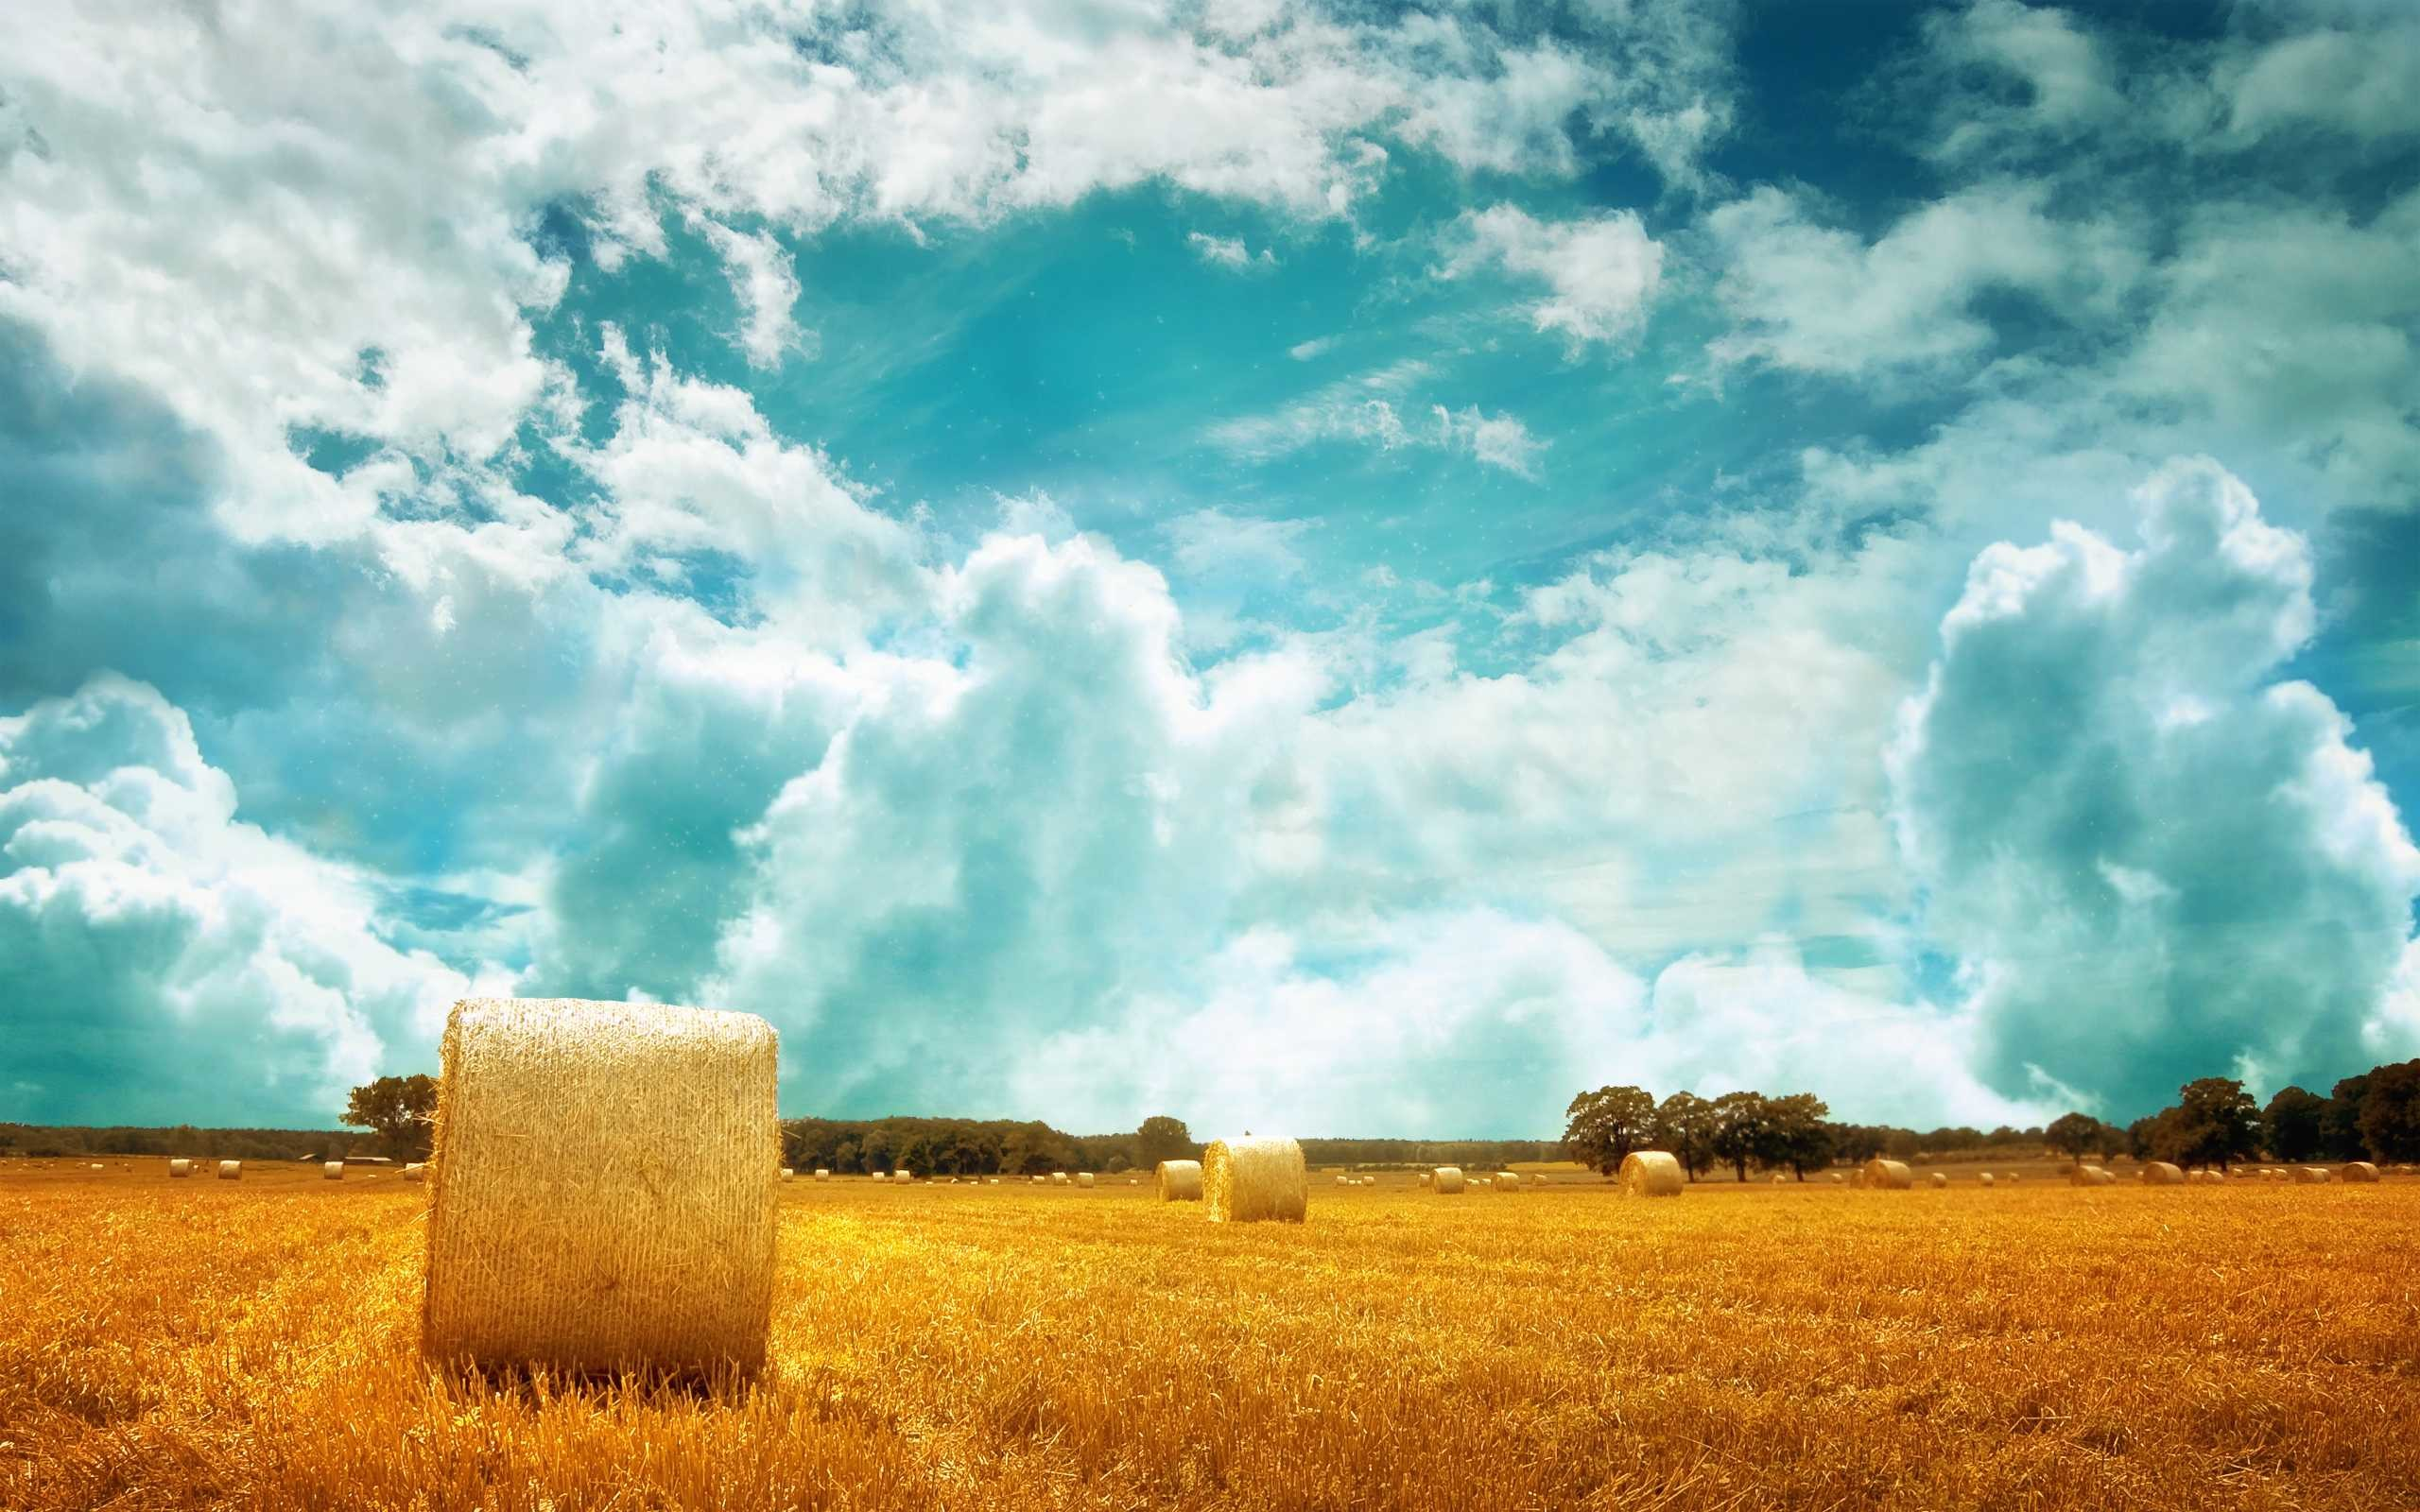 Res: 2560x1600, Decent Clouds Wallpapers Hd Images New Also Clouds Wallpapers